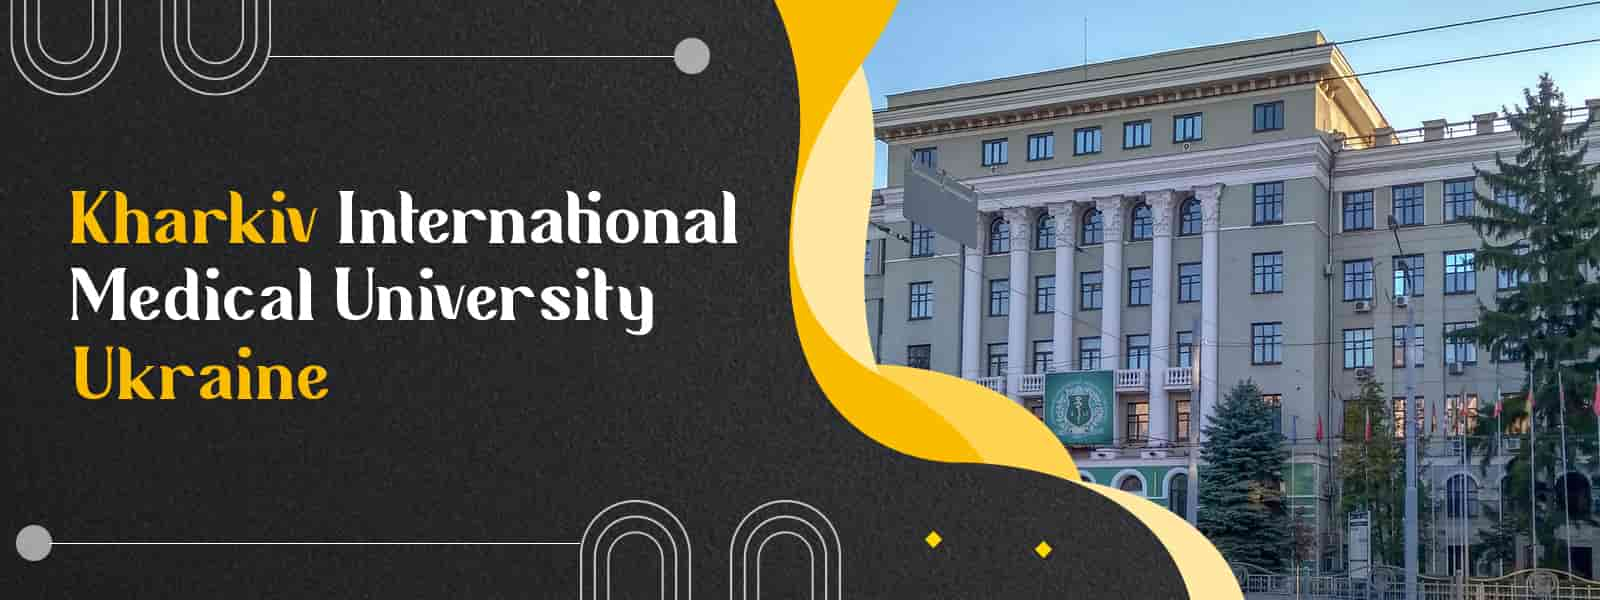 Kharkiv International Medical University (KHIMU Ukraine)